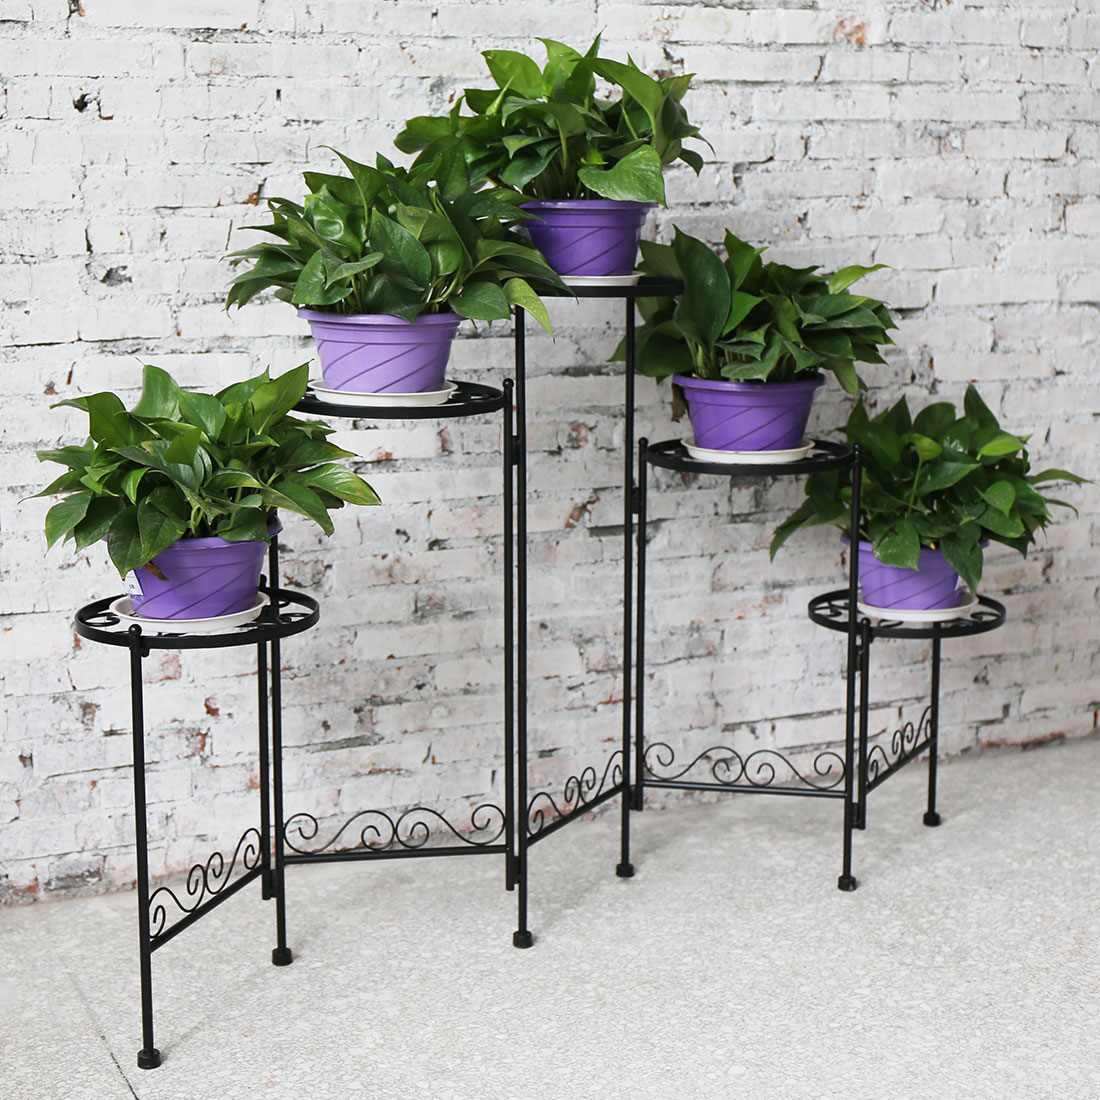 Folding garden metal plant stand home office decor 5 for Plaque metal decorative pour jardin